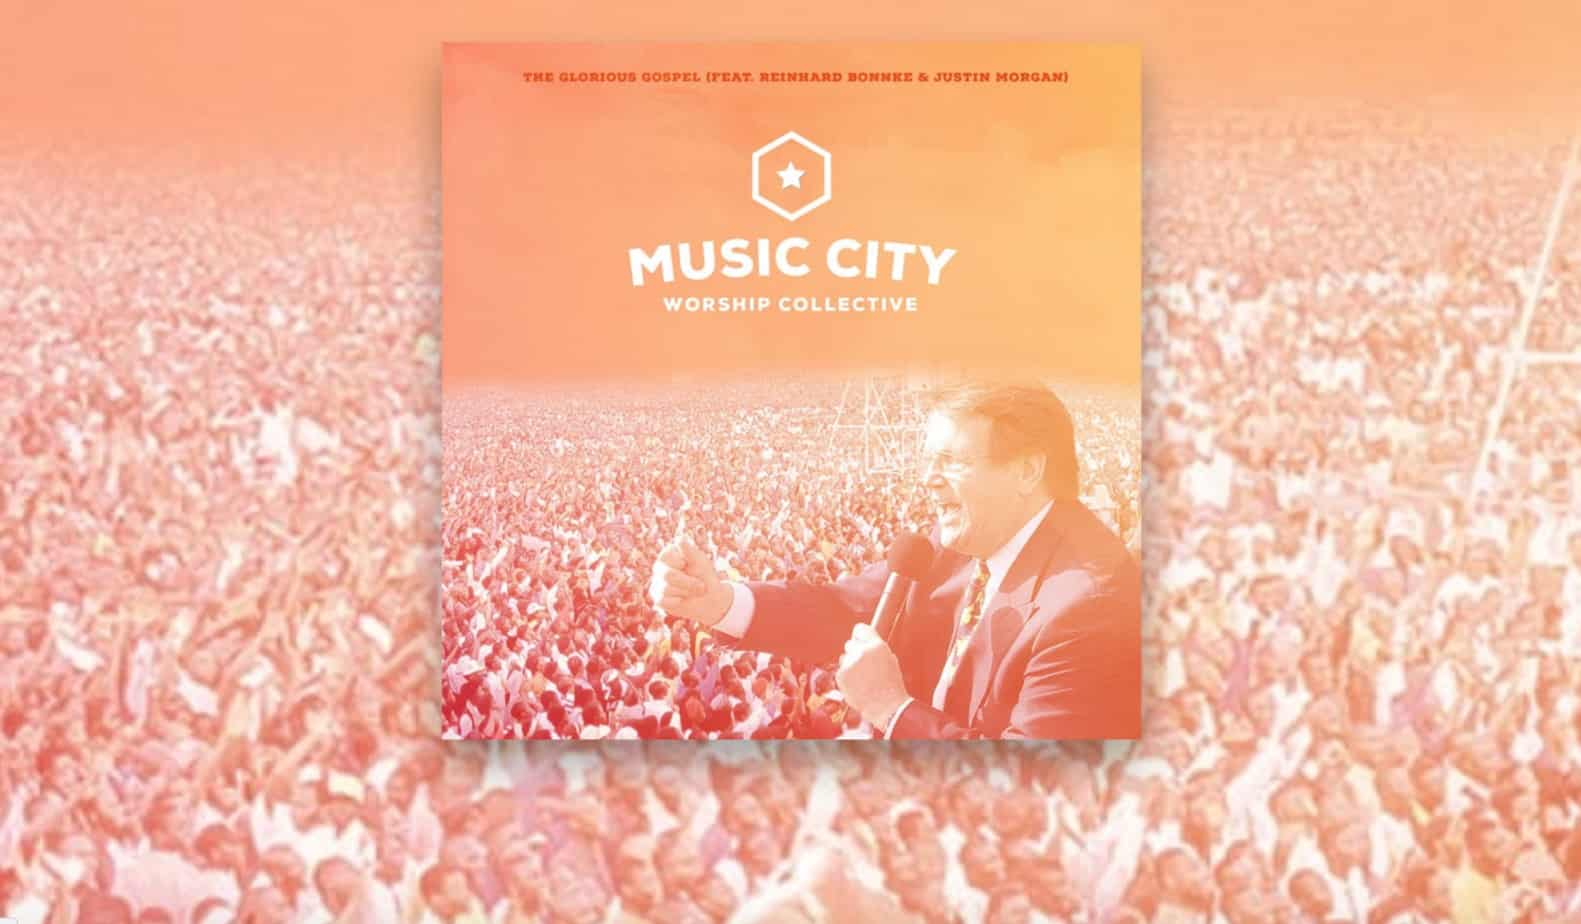 'The Glorious Gospel', a song by Reinhard Bonnke adds anointed music to late evangelist's legacy